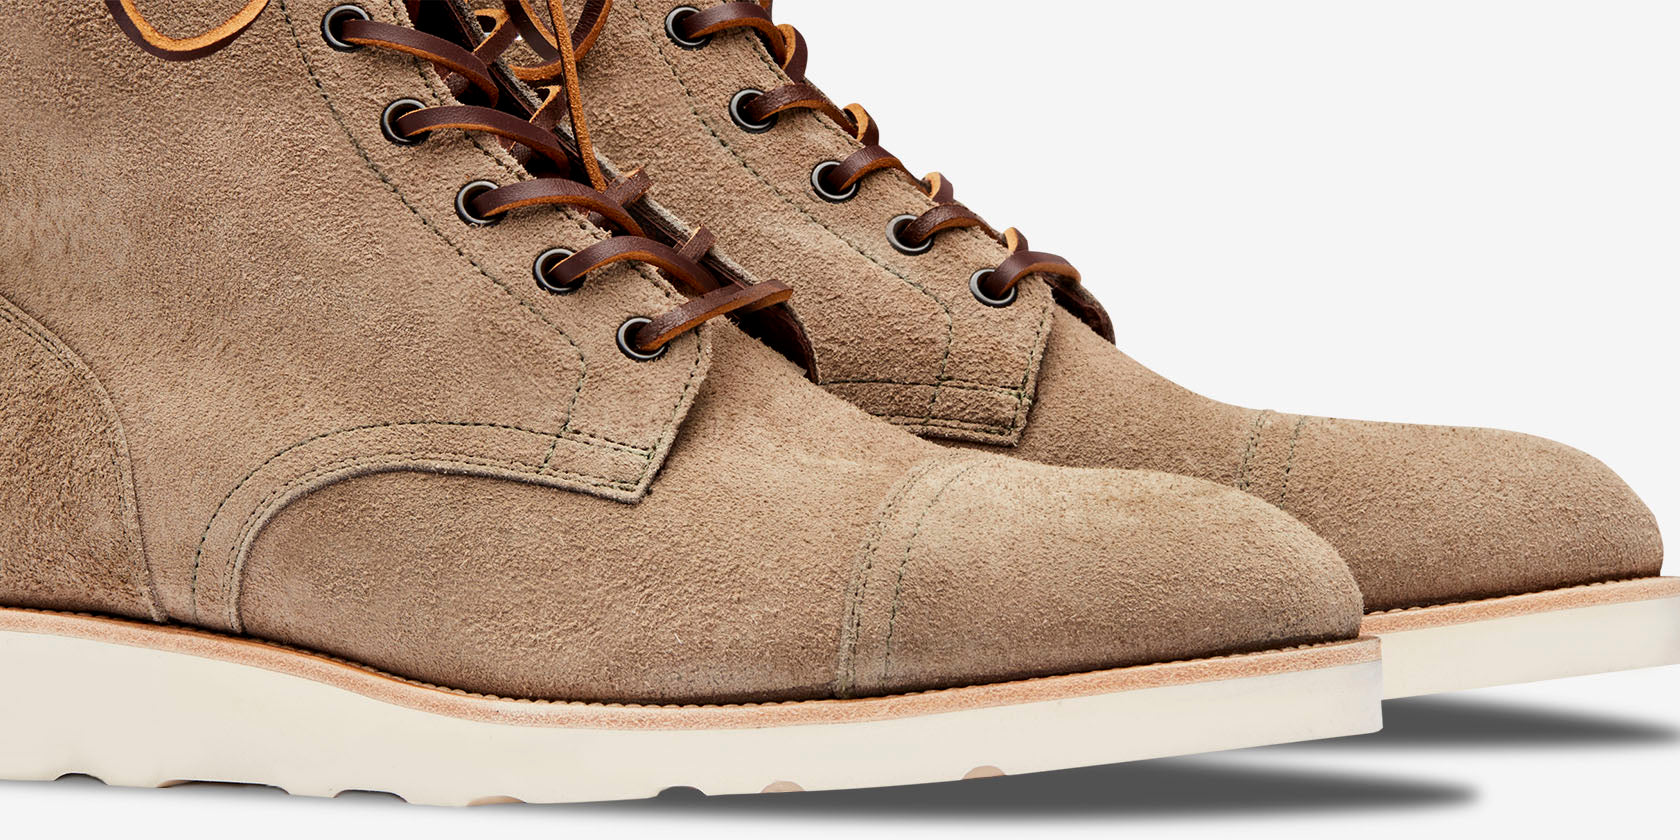 Design Details for SB 3 | Stone Roughout